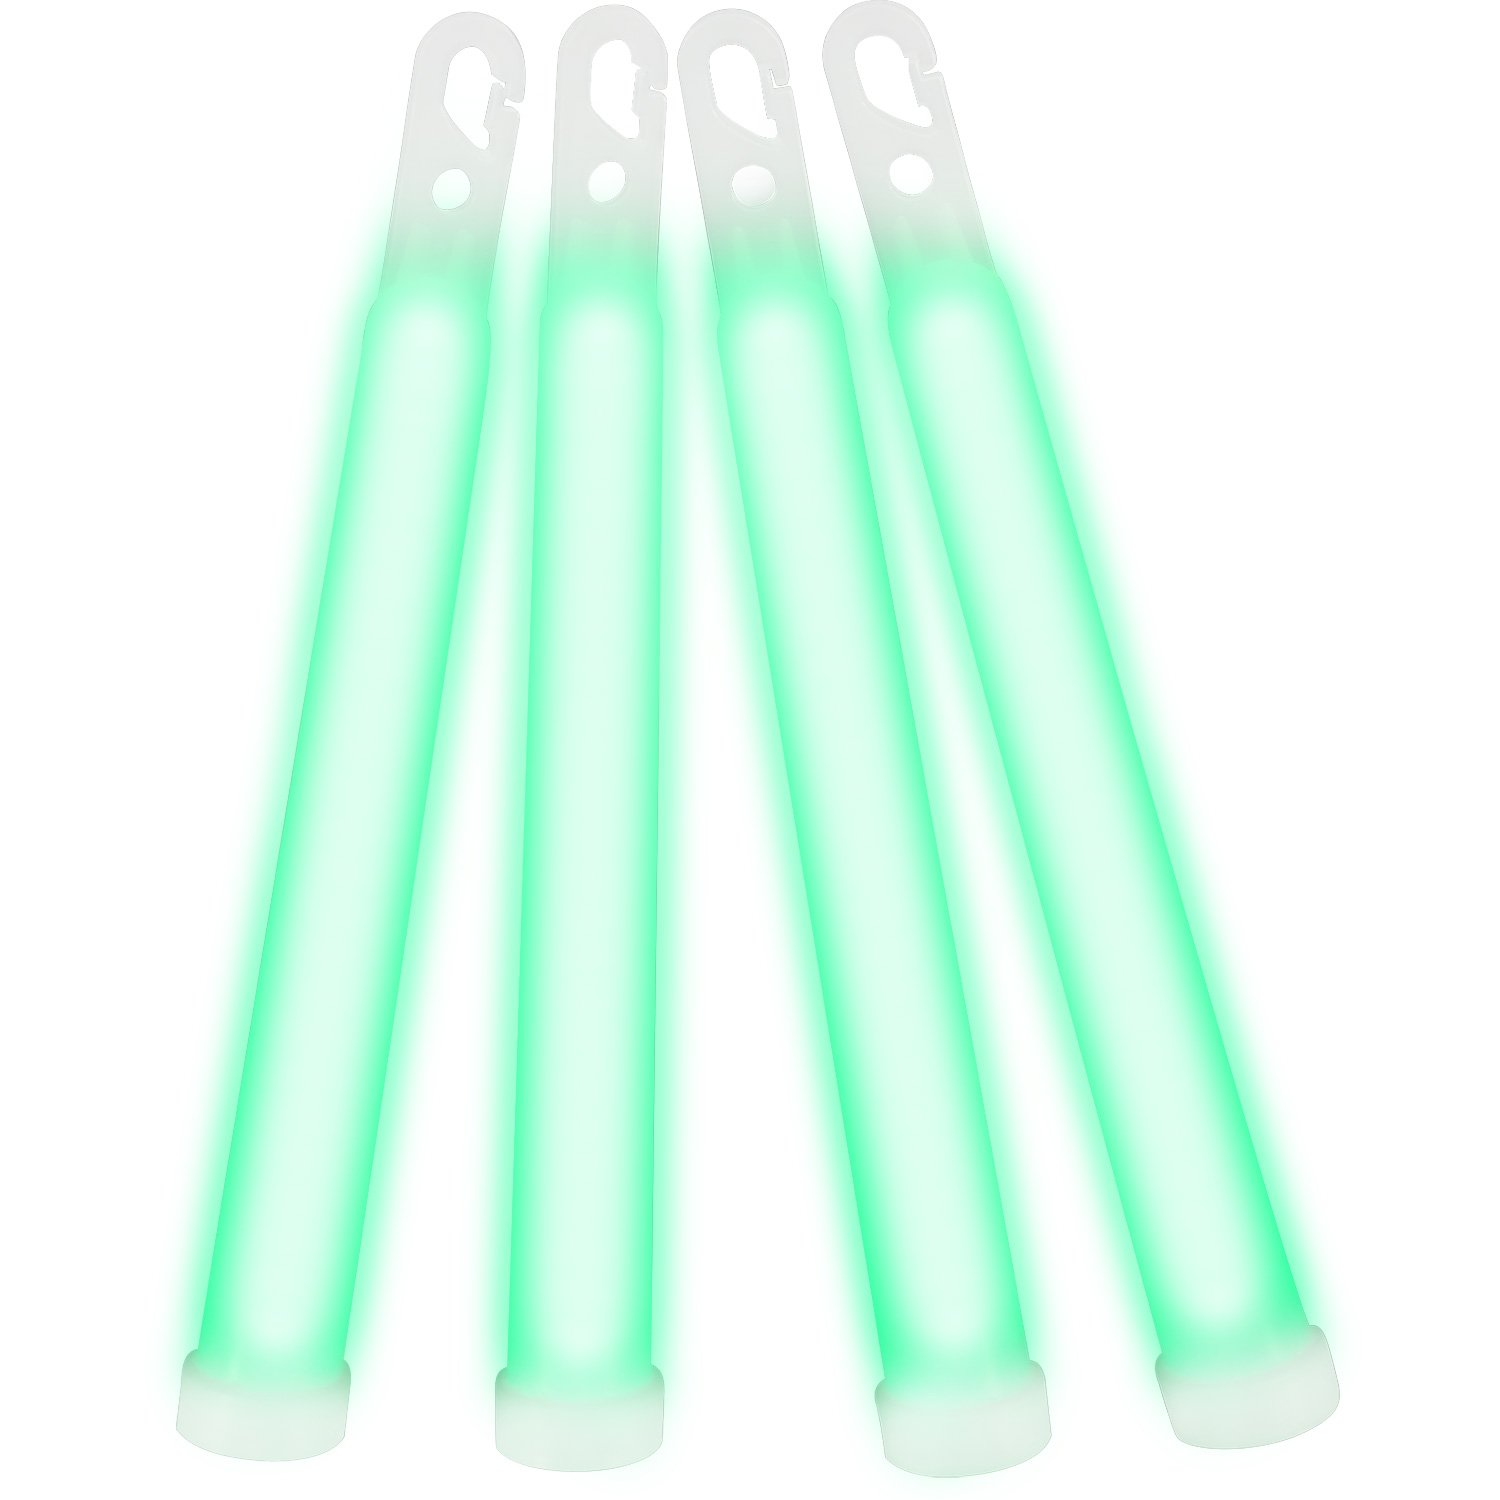 Northern Lights 6'' 12 Hour Safety Lightstick Green (500 Pieces)